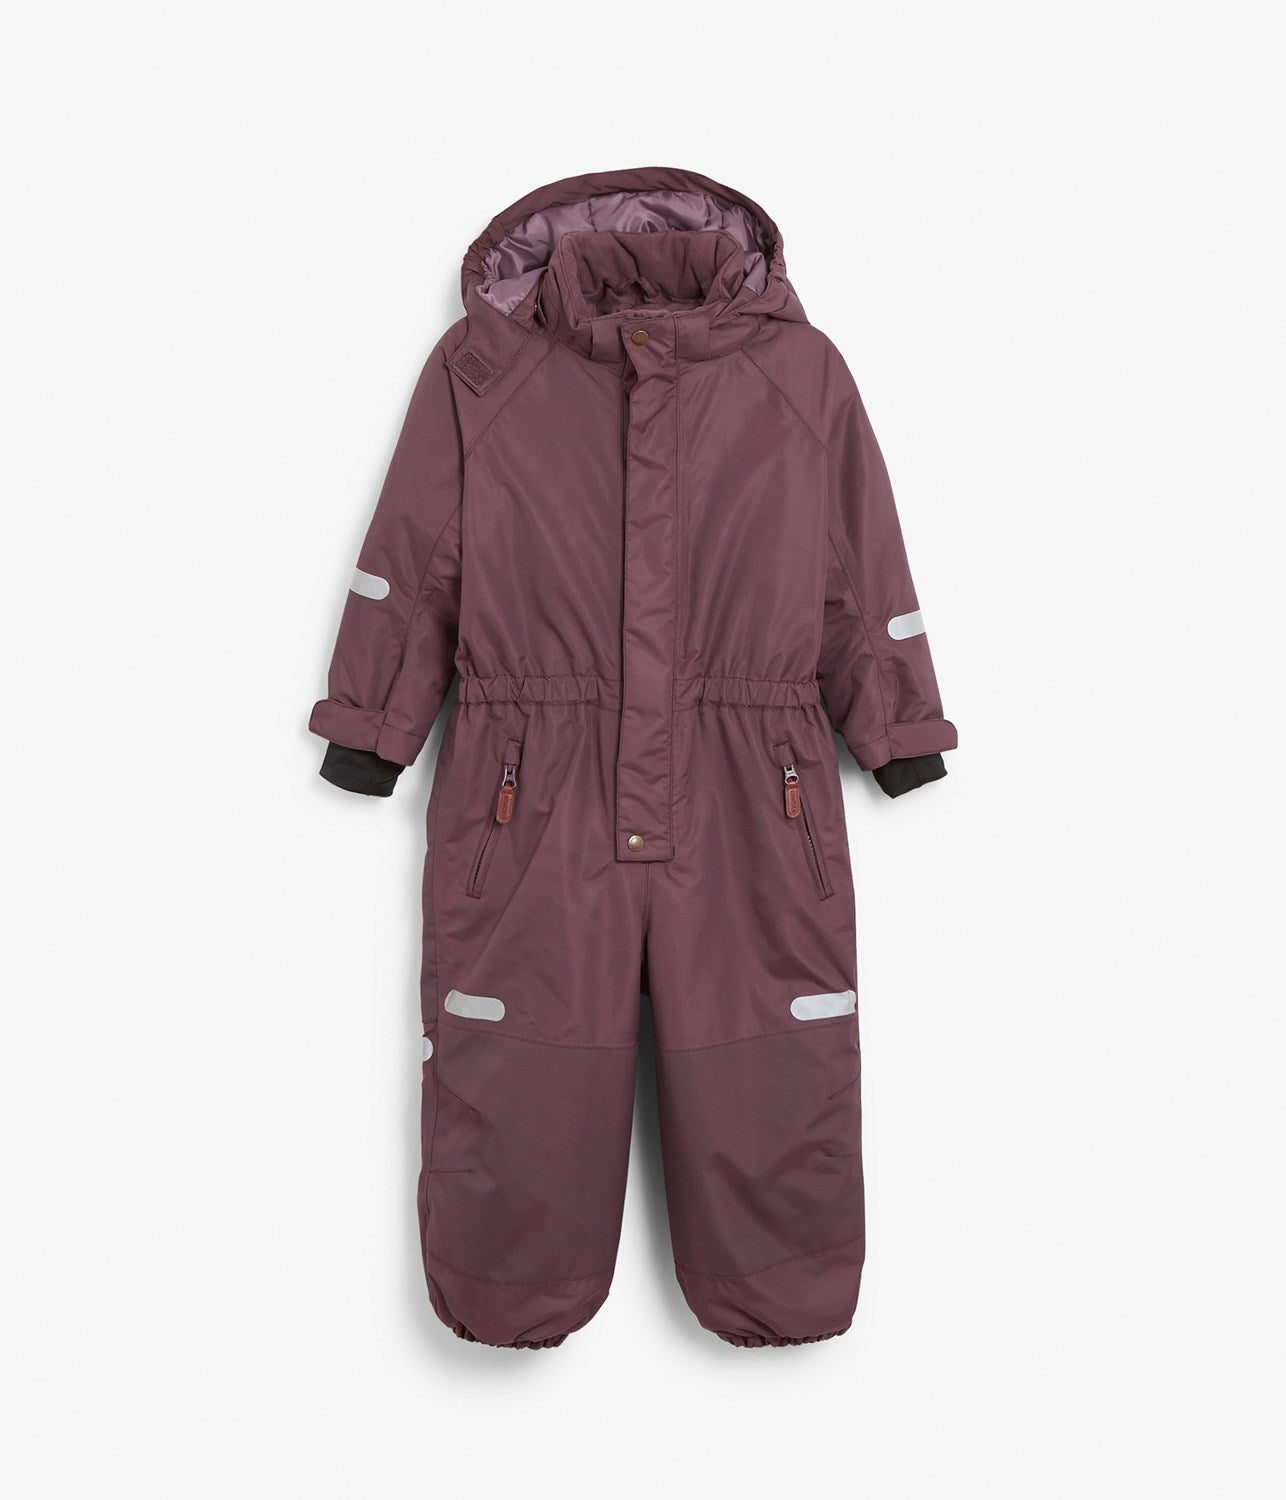 Waterproof technical purple winter overalls